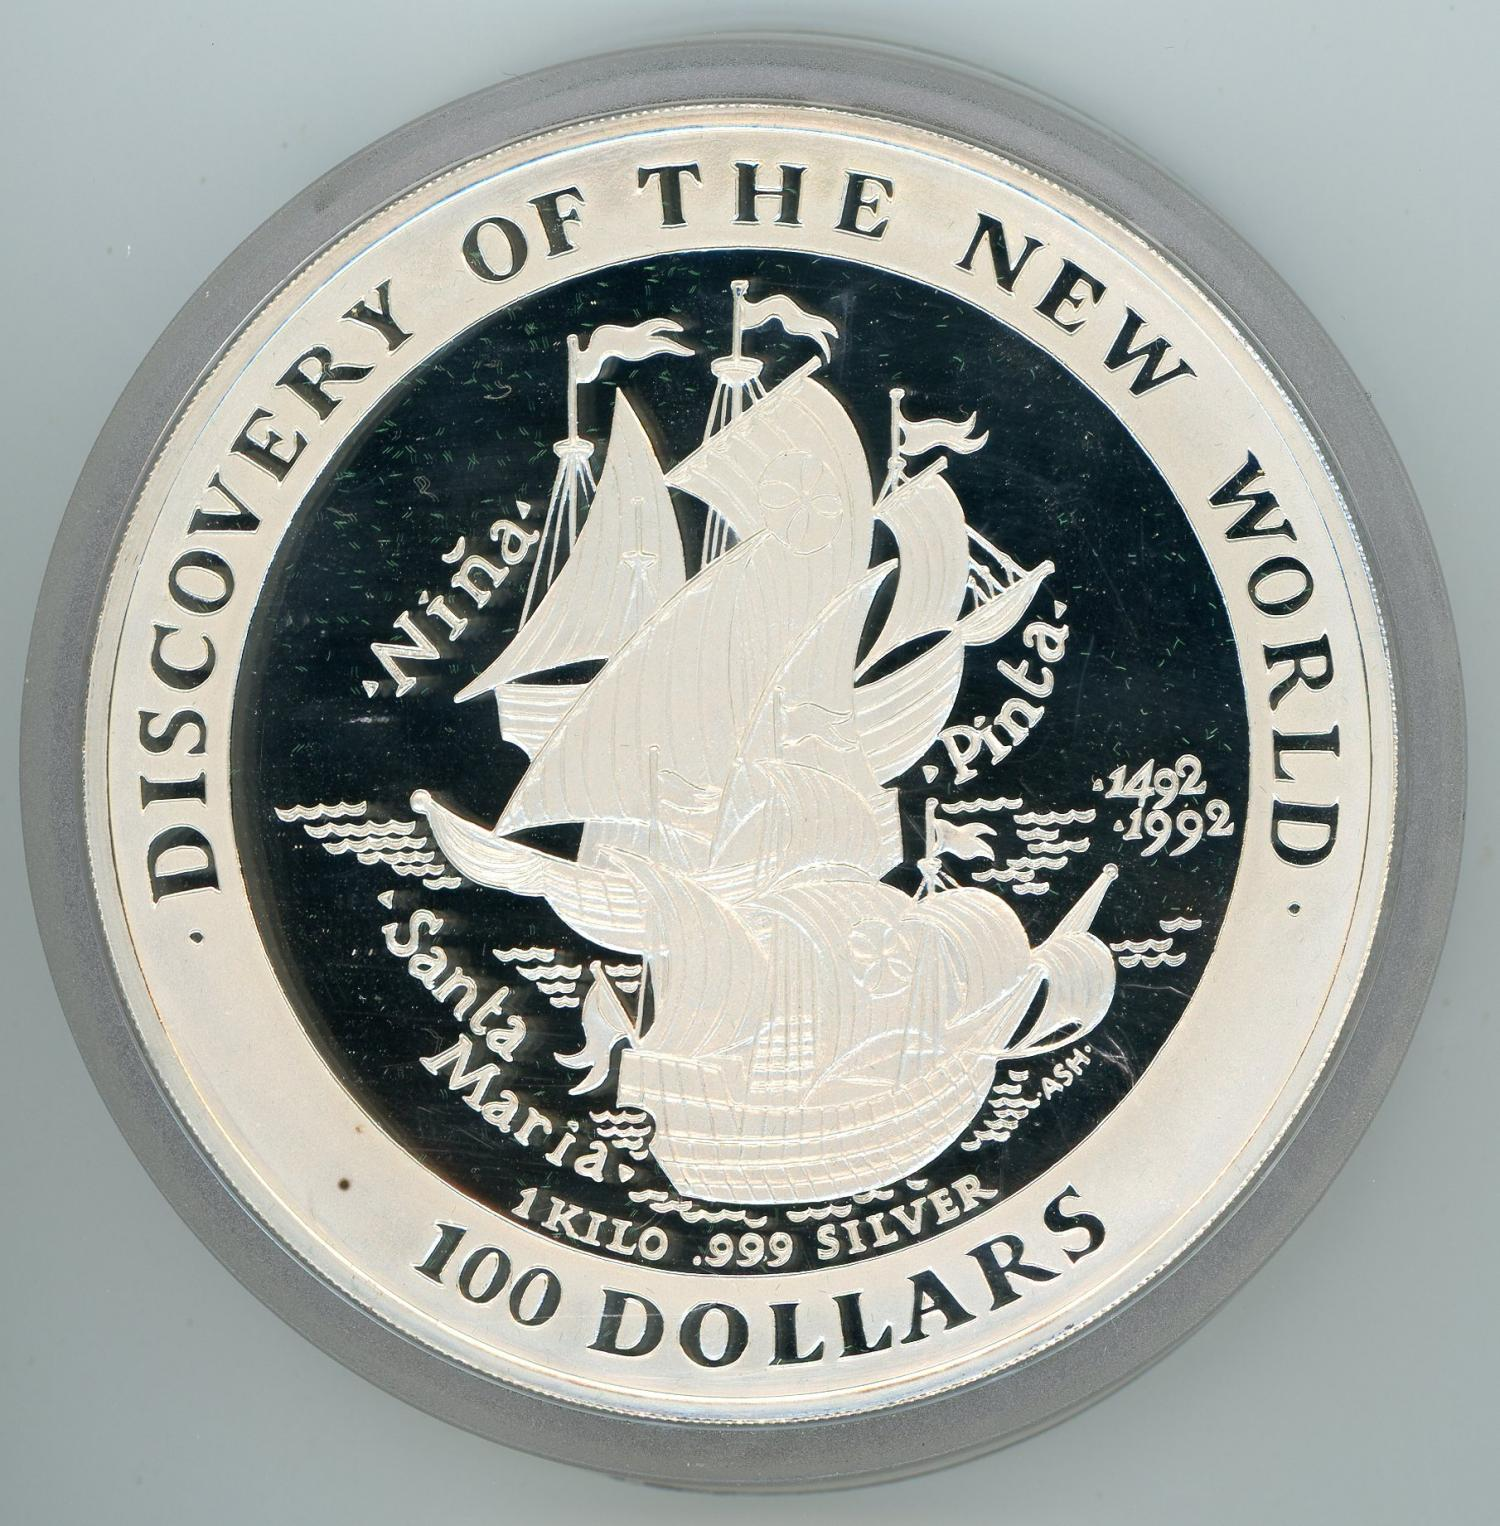 Thumbnail for 1992 Commonwealth of the Bahamas 1kg Silver - Discovery of the New World